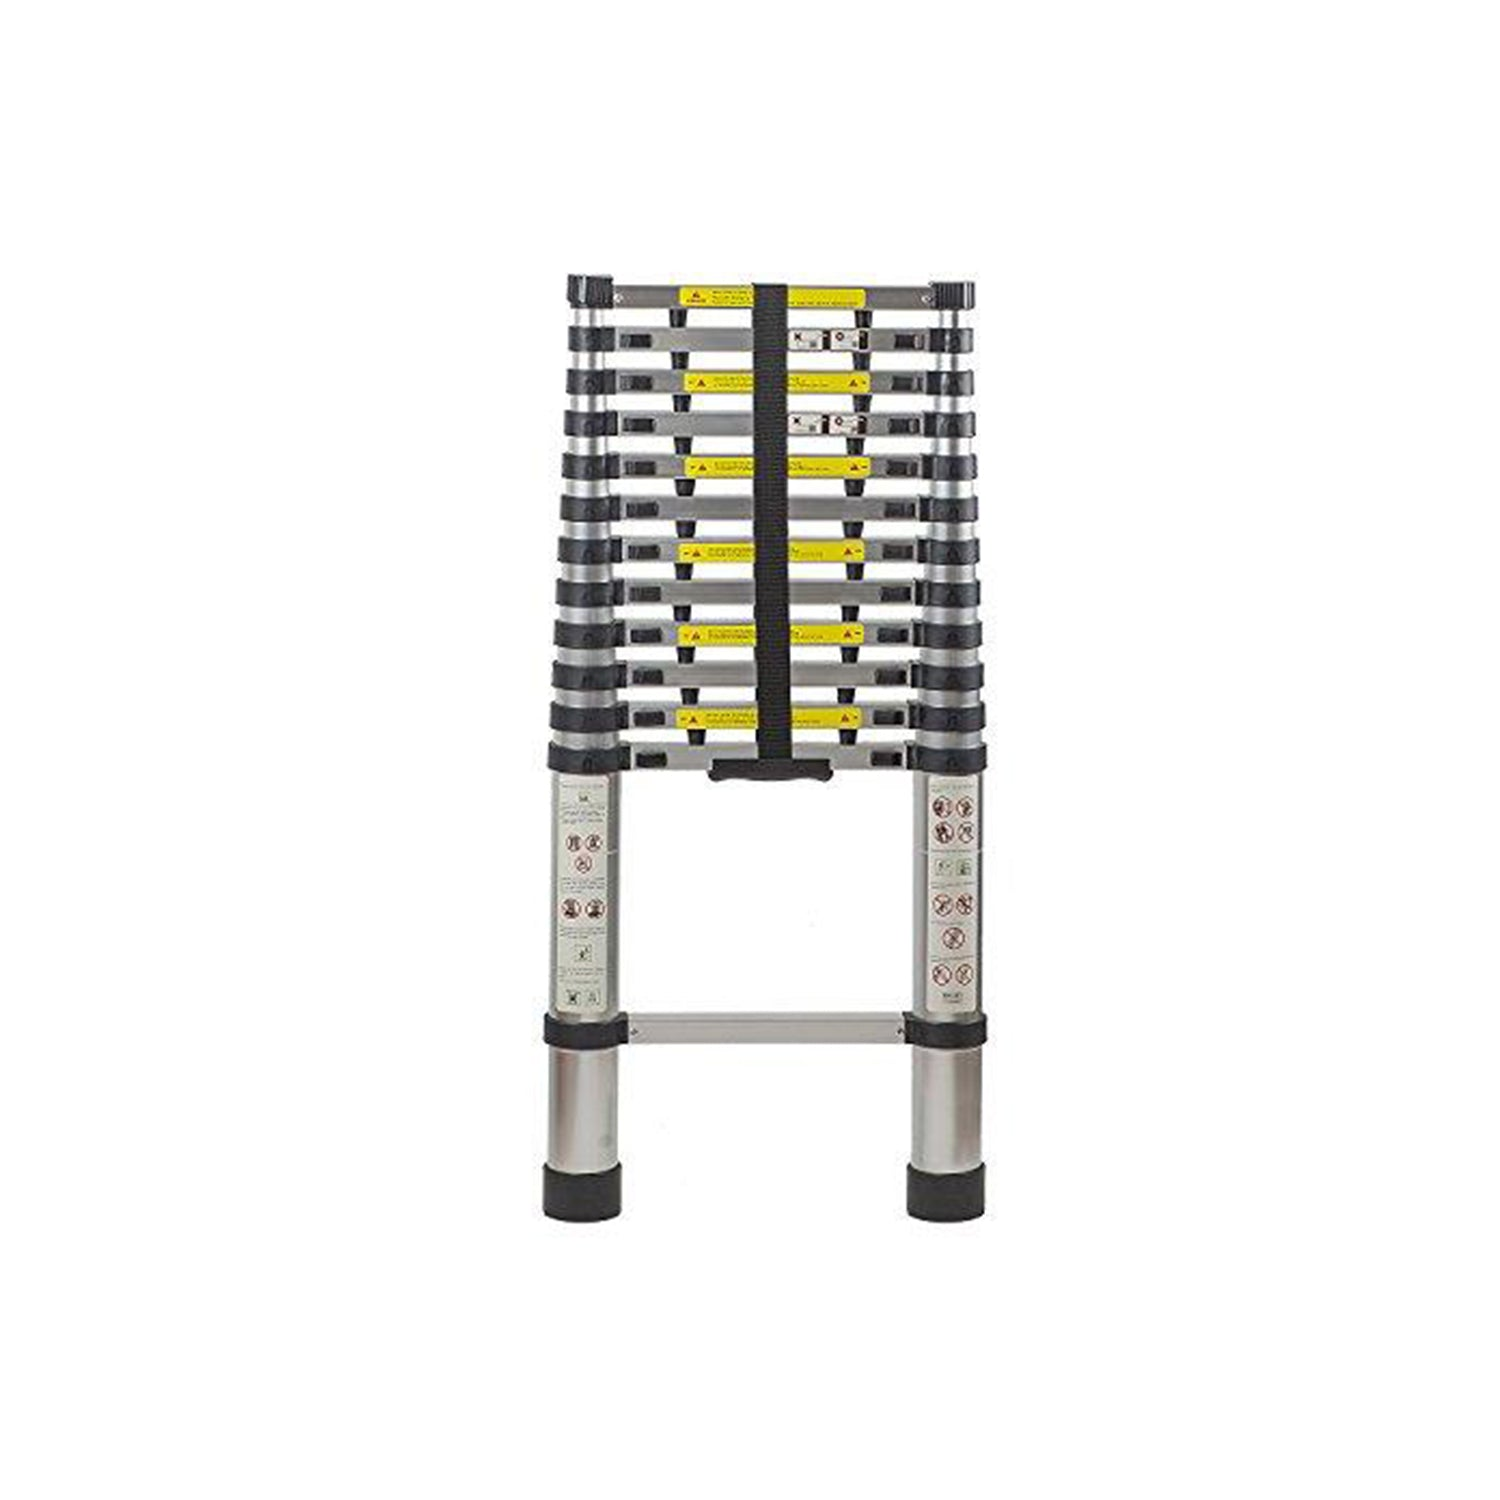 12.5 Ft Extendable Telescoping Aluminum Portable Ladder